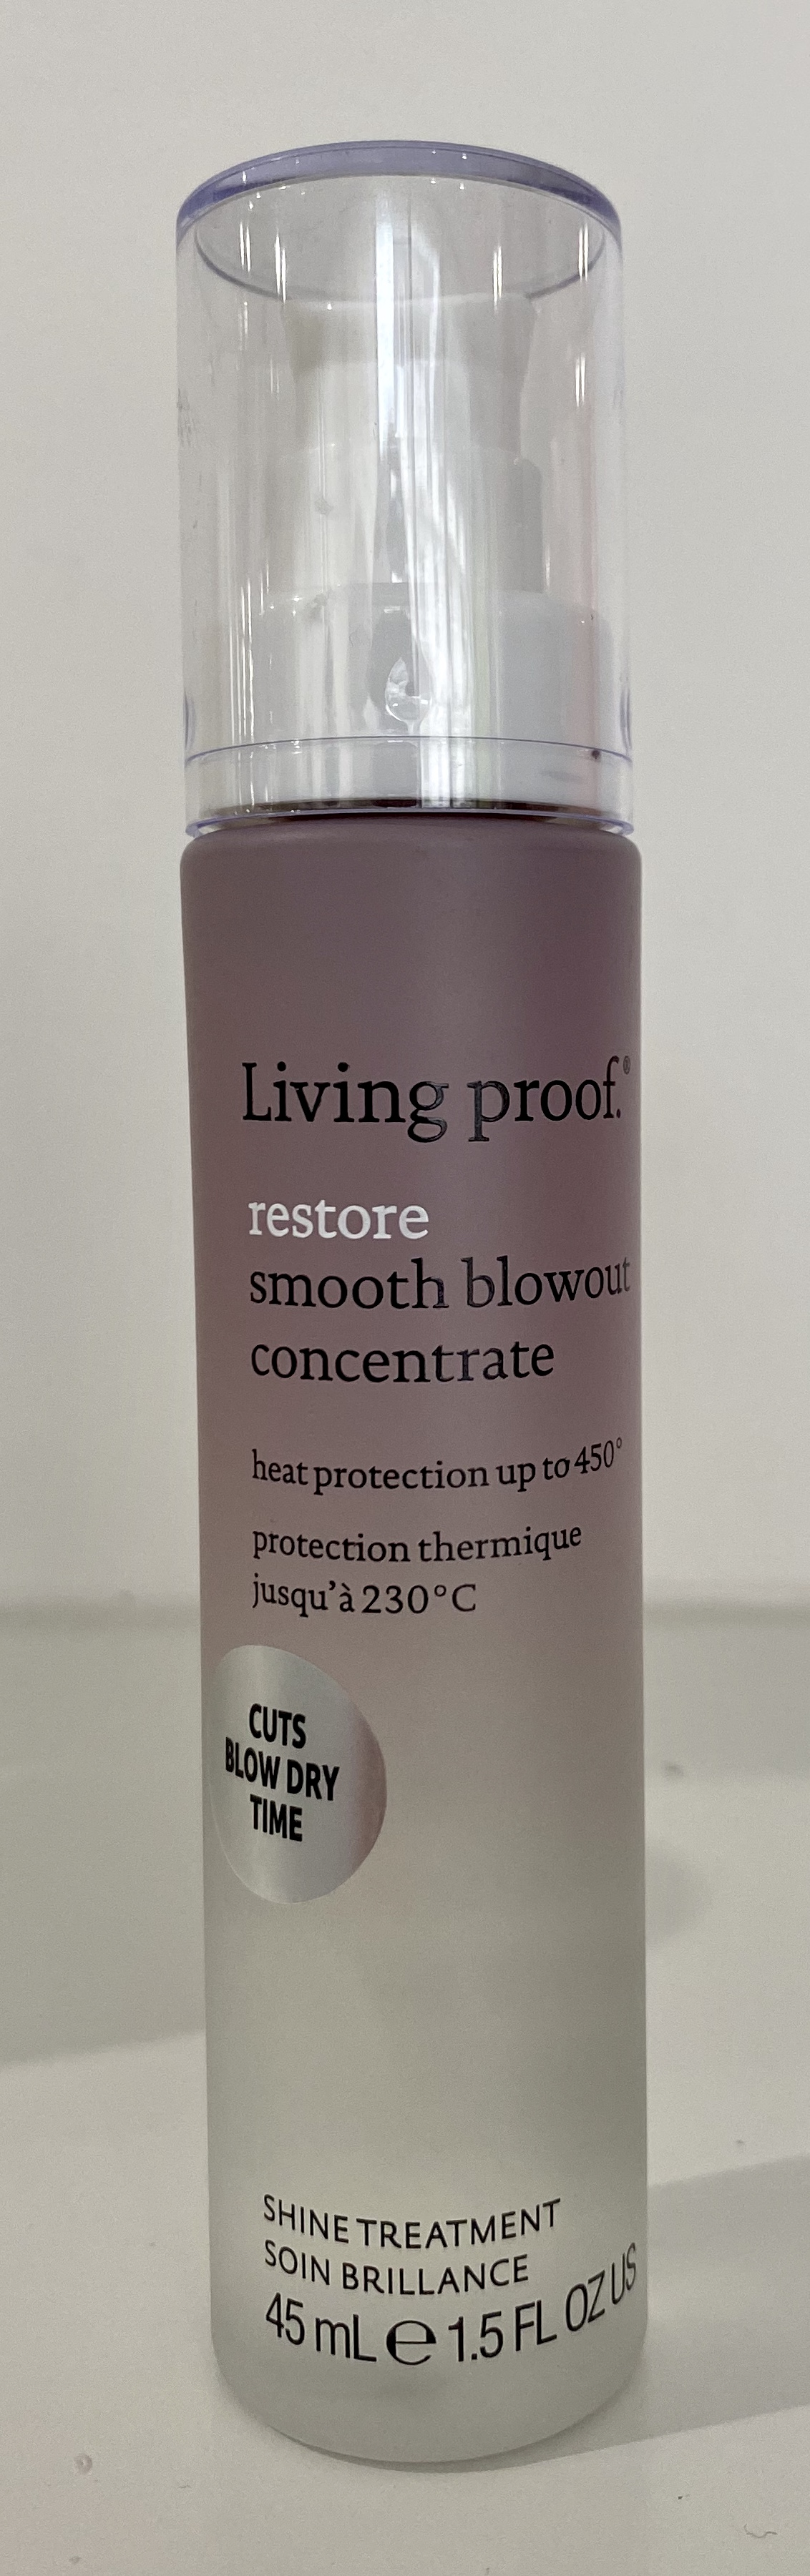 Restore Blowout Concentrate